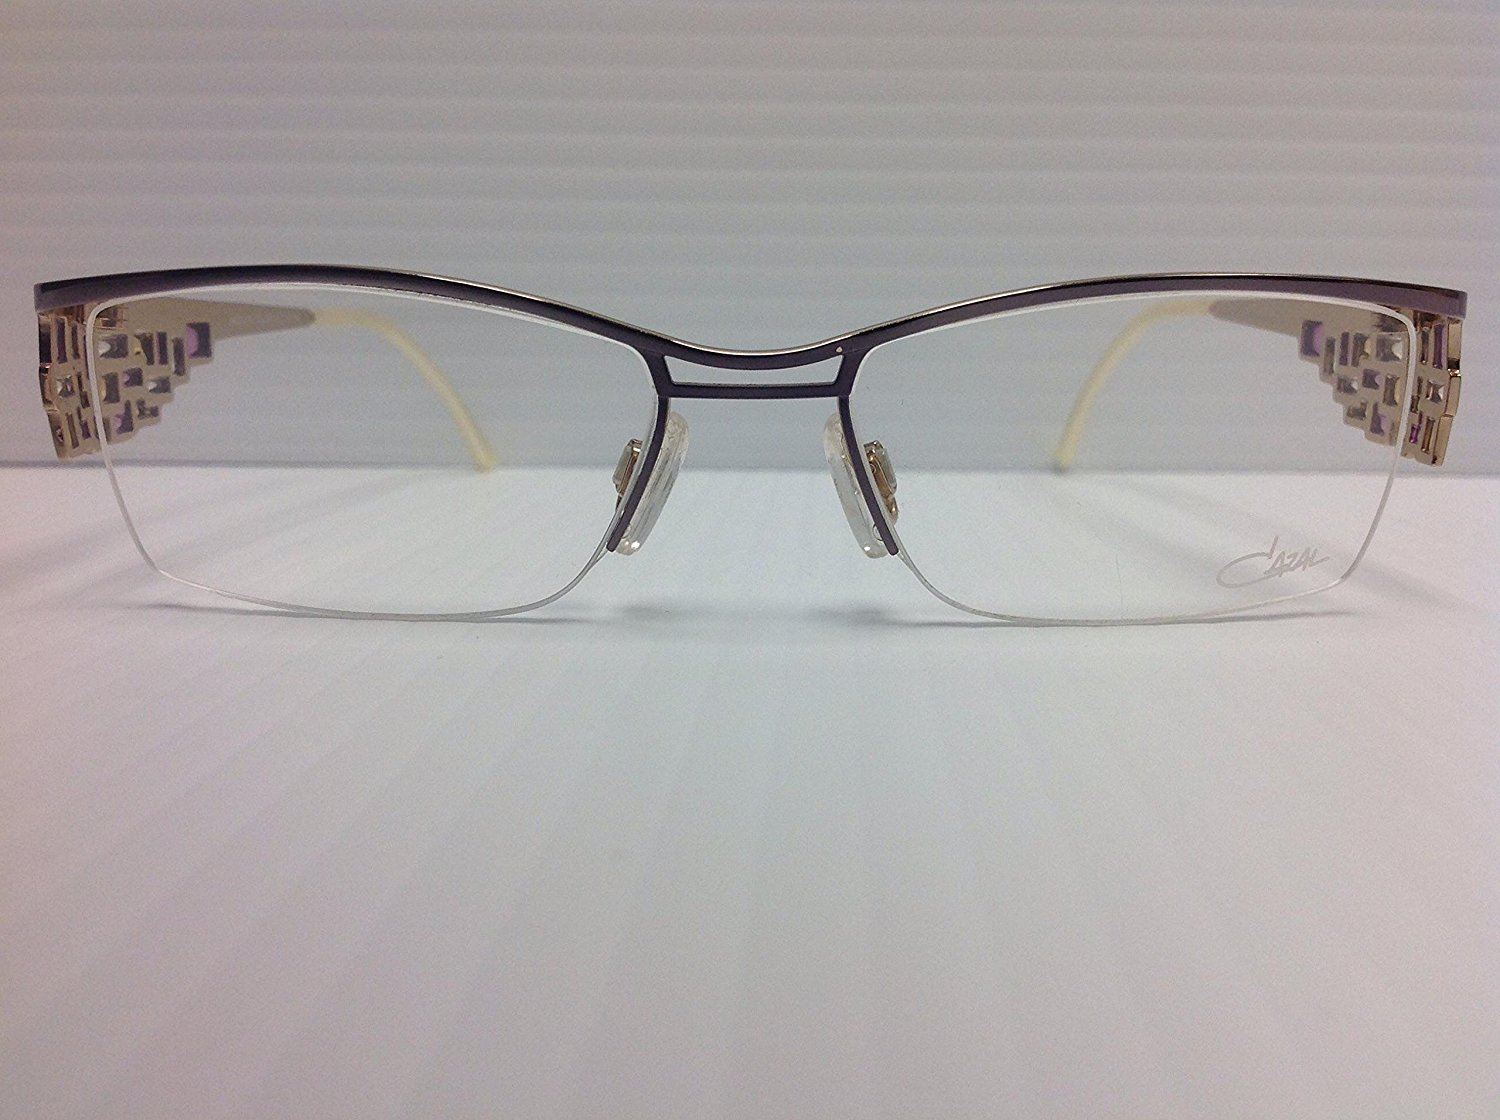 001a1d26c2a1 Get Quotations · CAZAL Eyewear Frame Glasses MOD.4170 COL.002 52 16 130